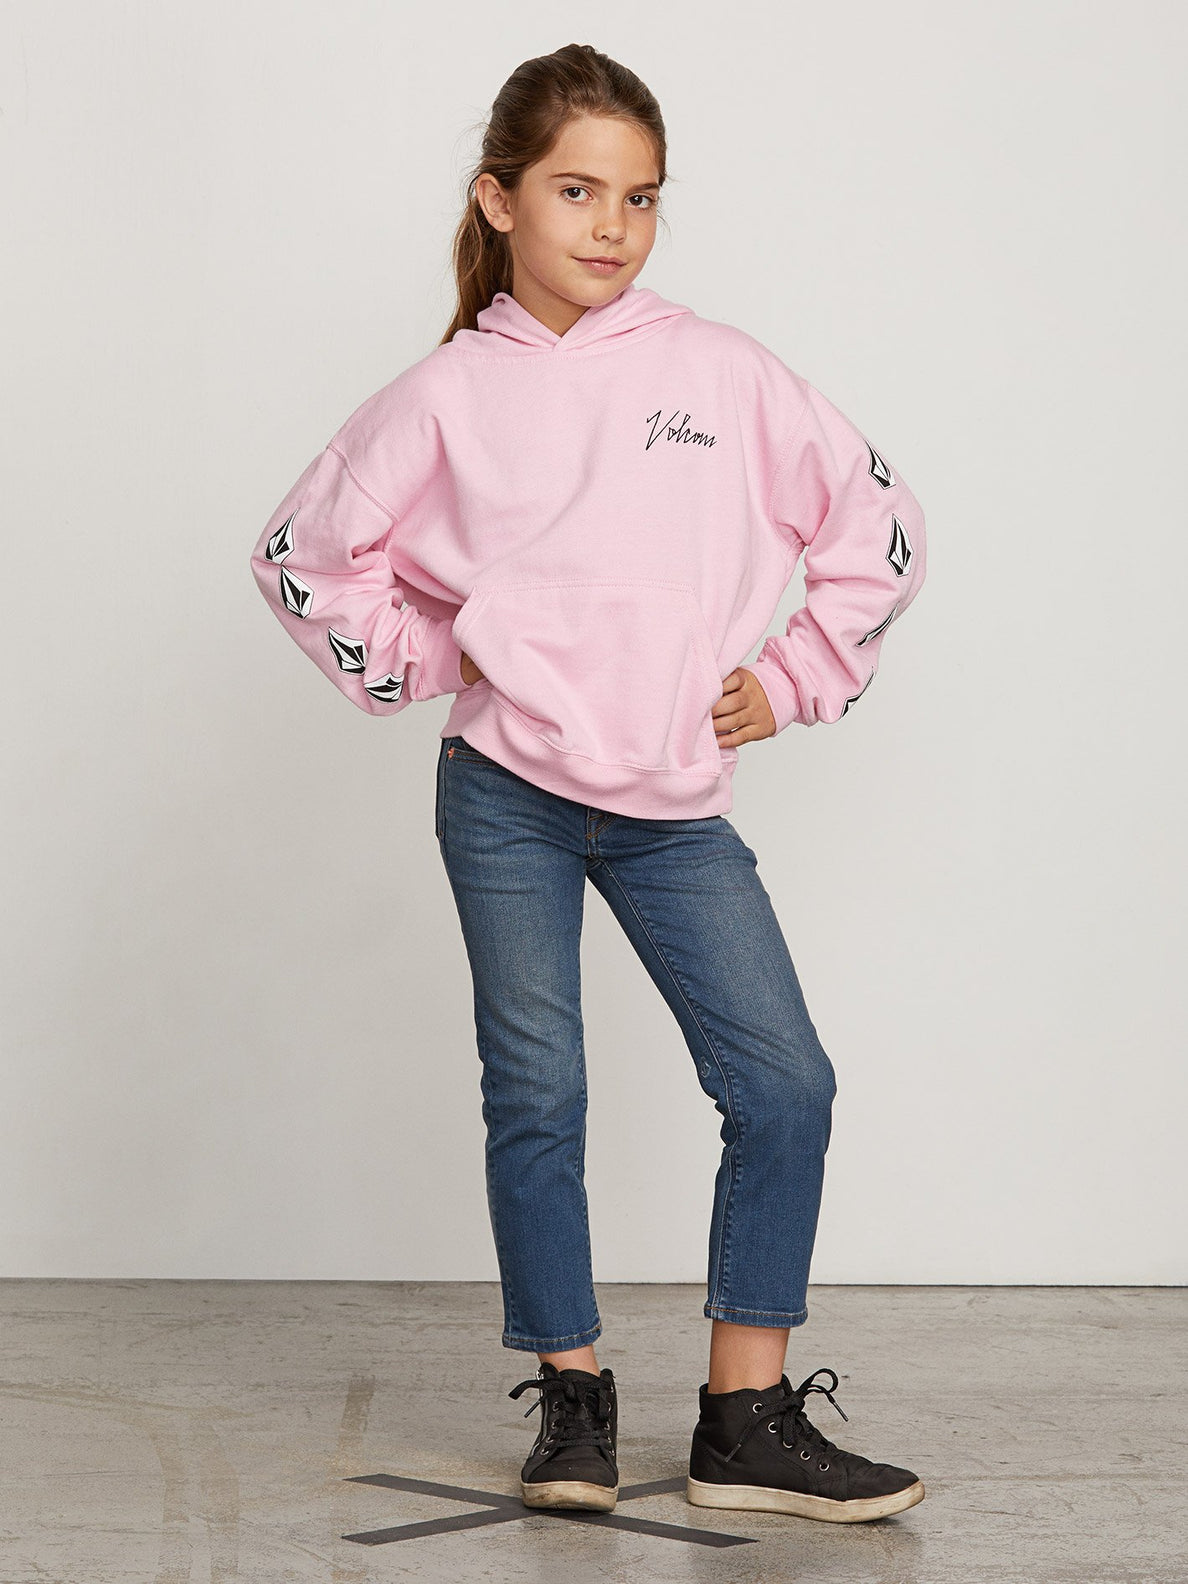 Big Girls Arm Candy Hoodie In Dusty Rose, Front View